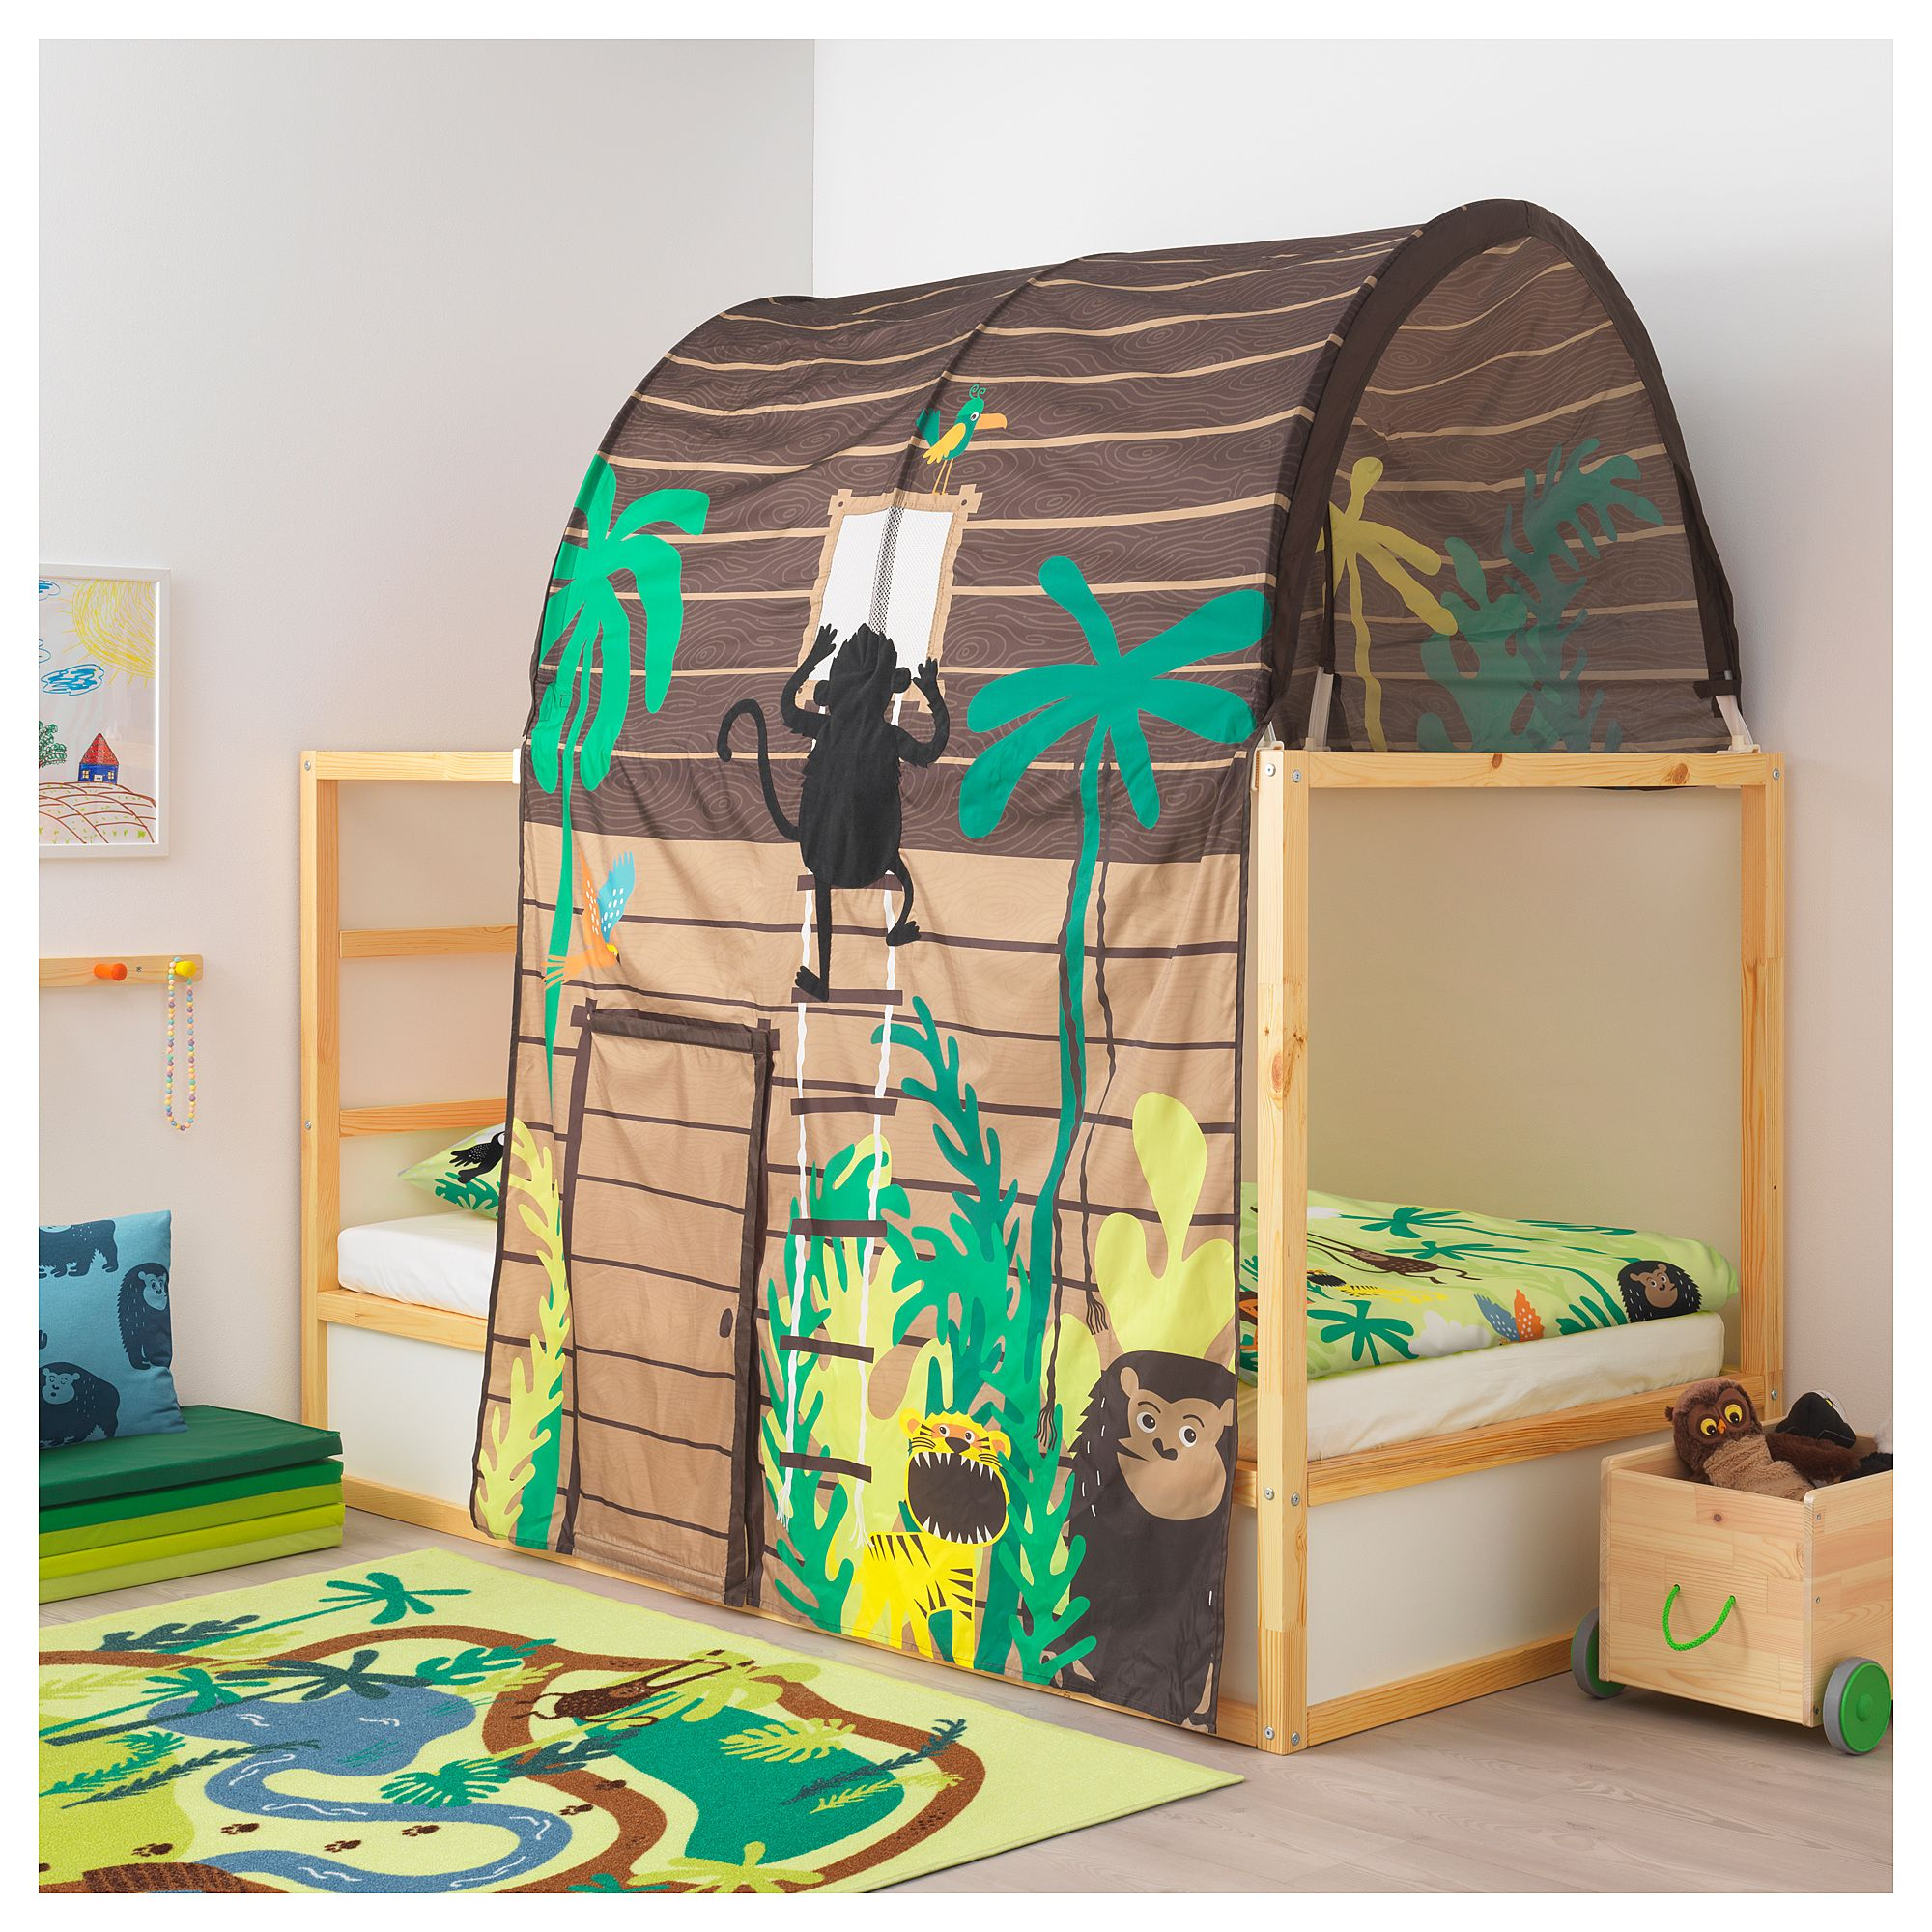 IKEA KURA Bed tent with curtain hut brown Bed tent